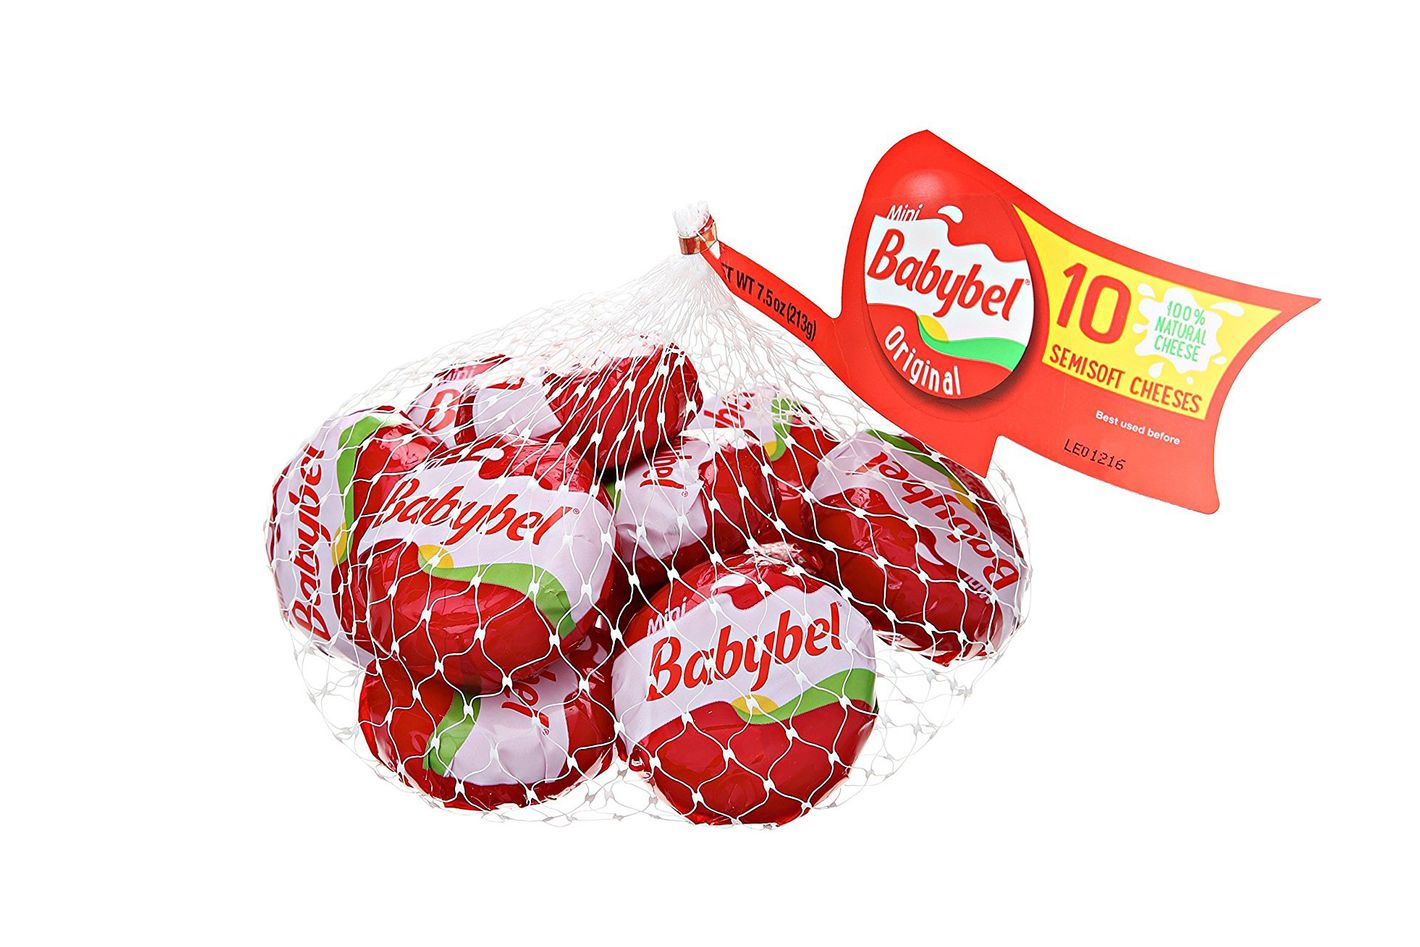 10-Pack of Babybel Cheeses